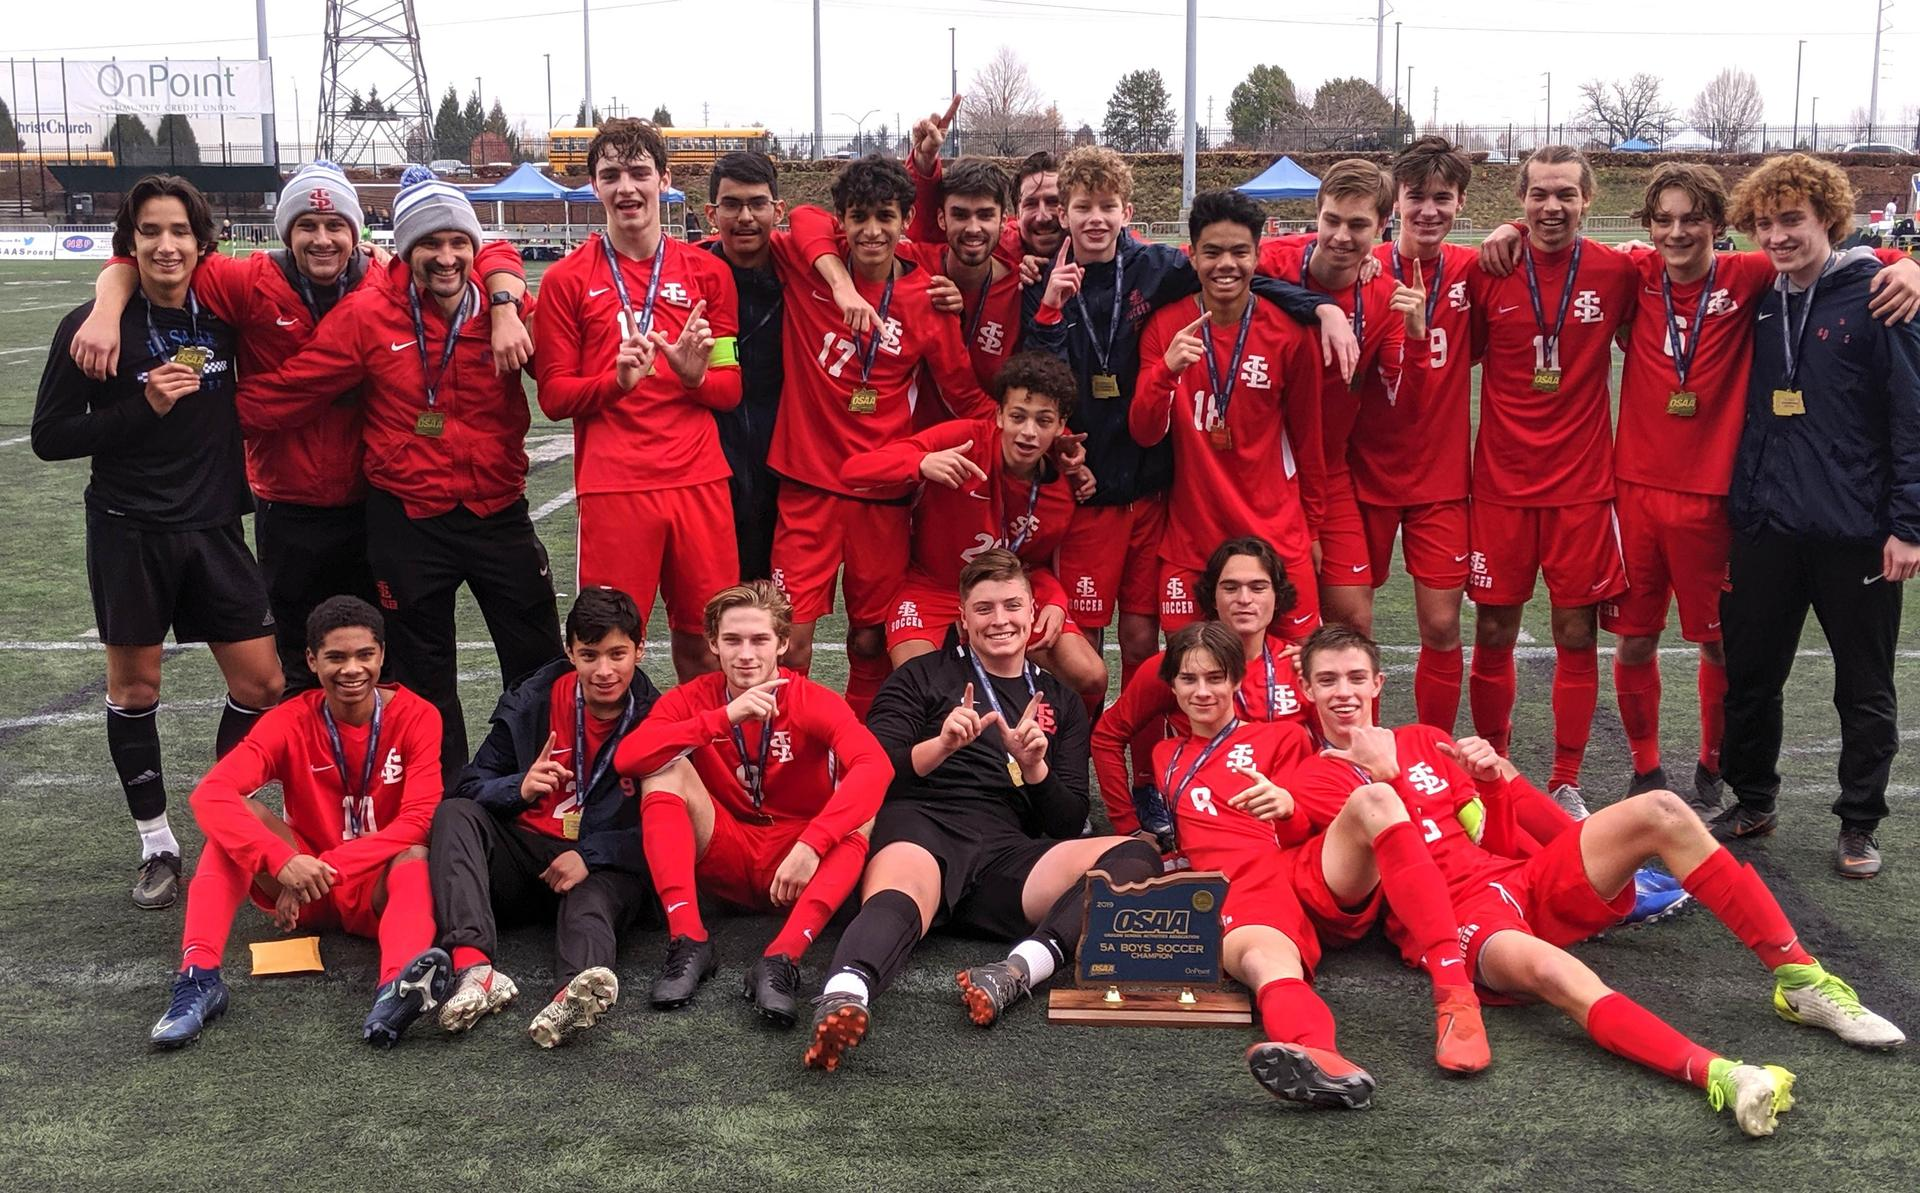 2019 boys soccer state champs